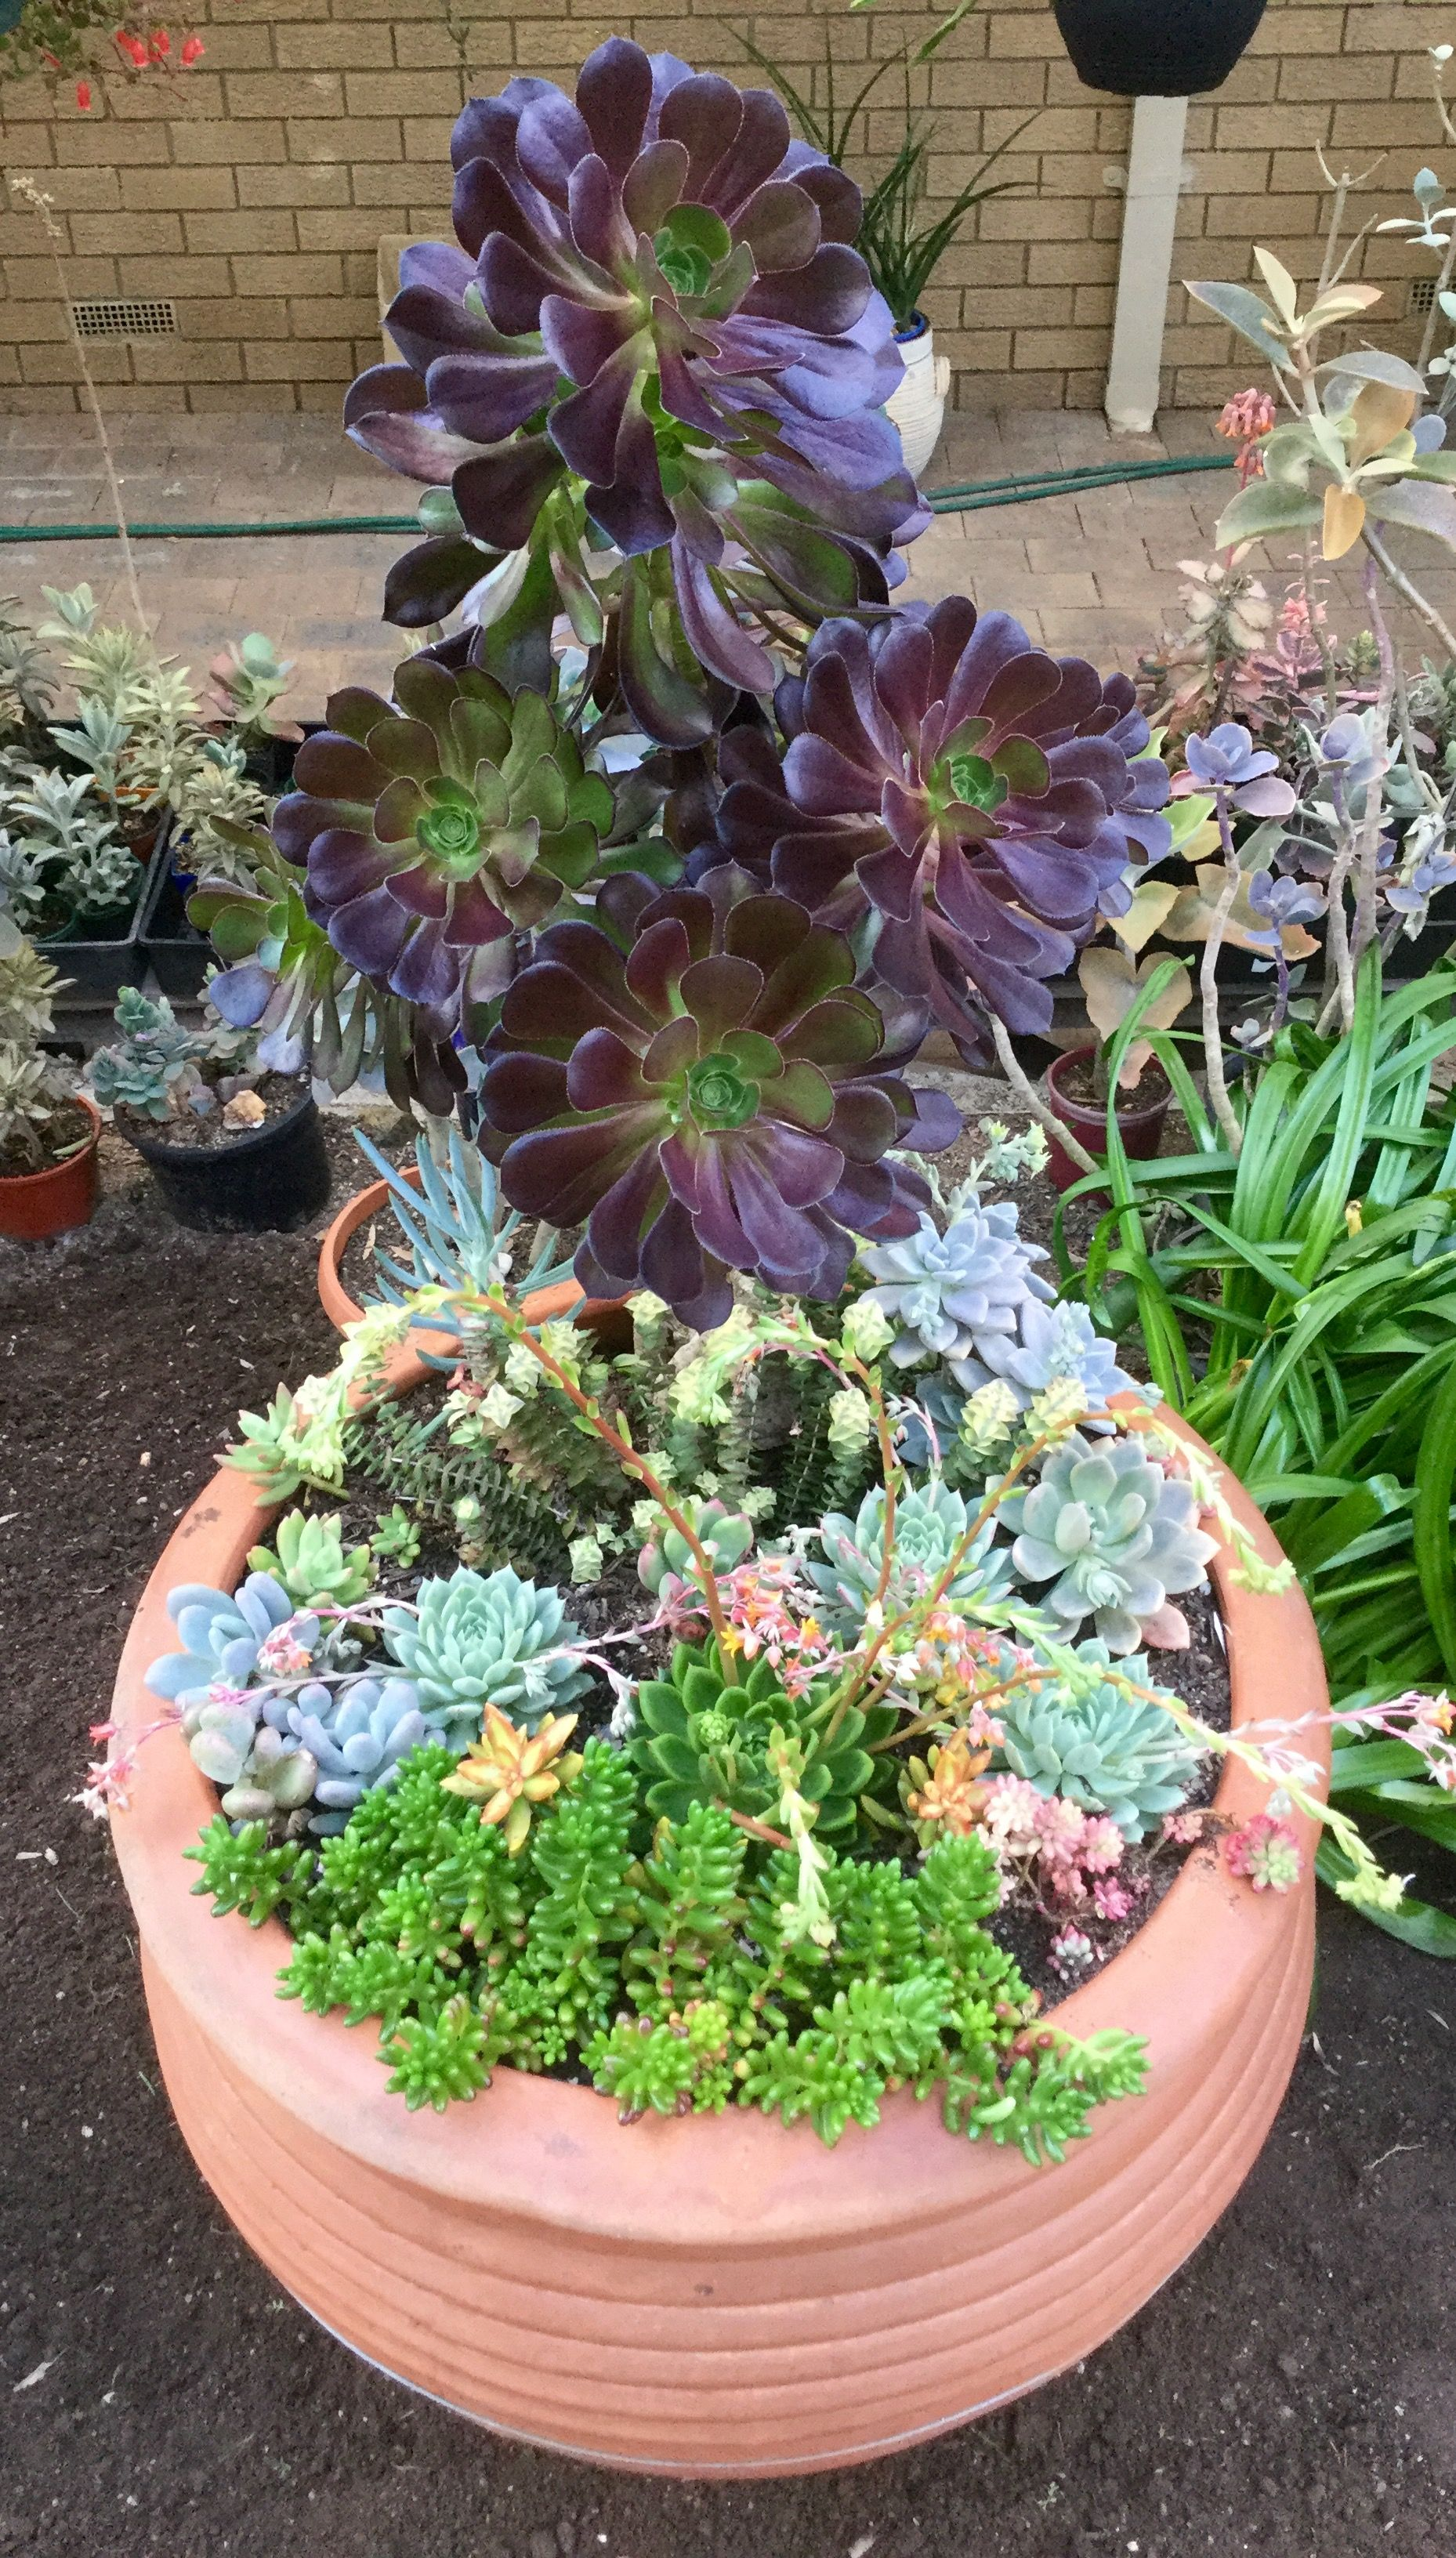 A Very Big Pot Of Mixed Succulents Plants Planting Succulents Succulents